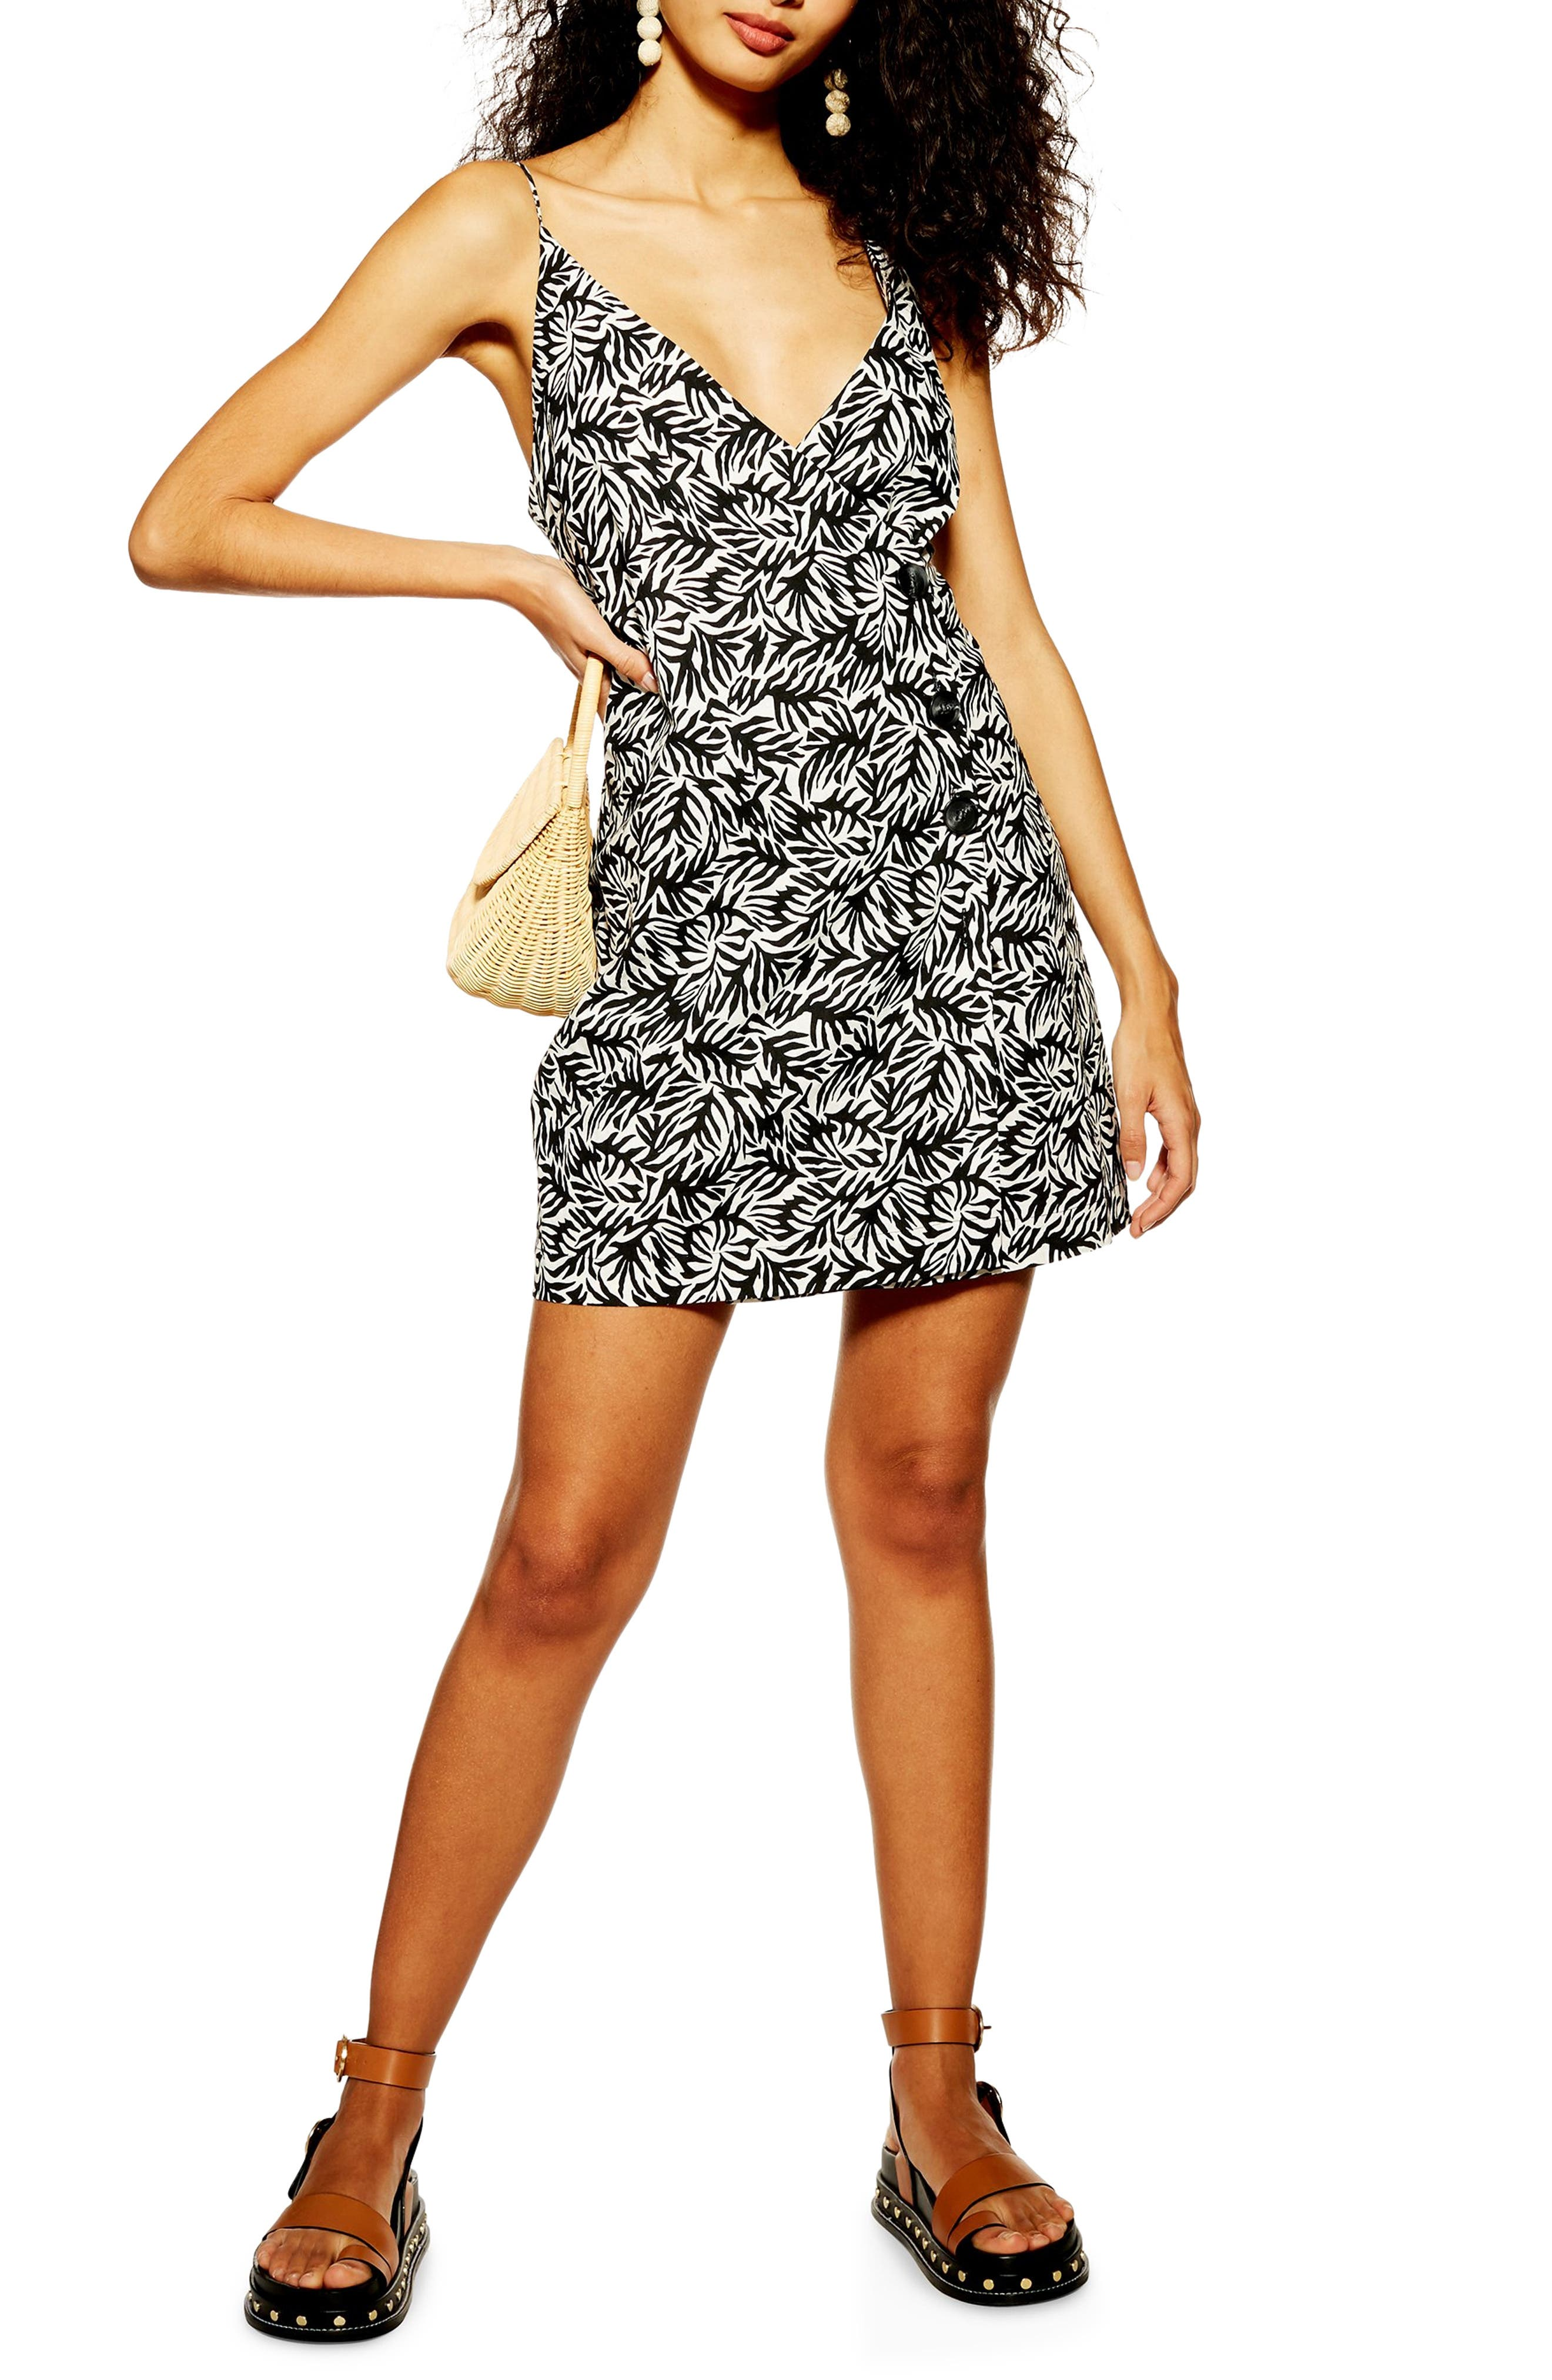 Topshop Matisse Wrap Style Button Front Minidress, US (fits like 2-4) - Black